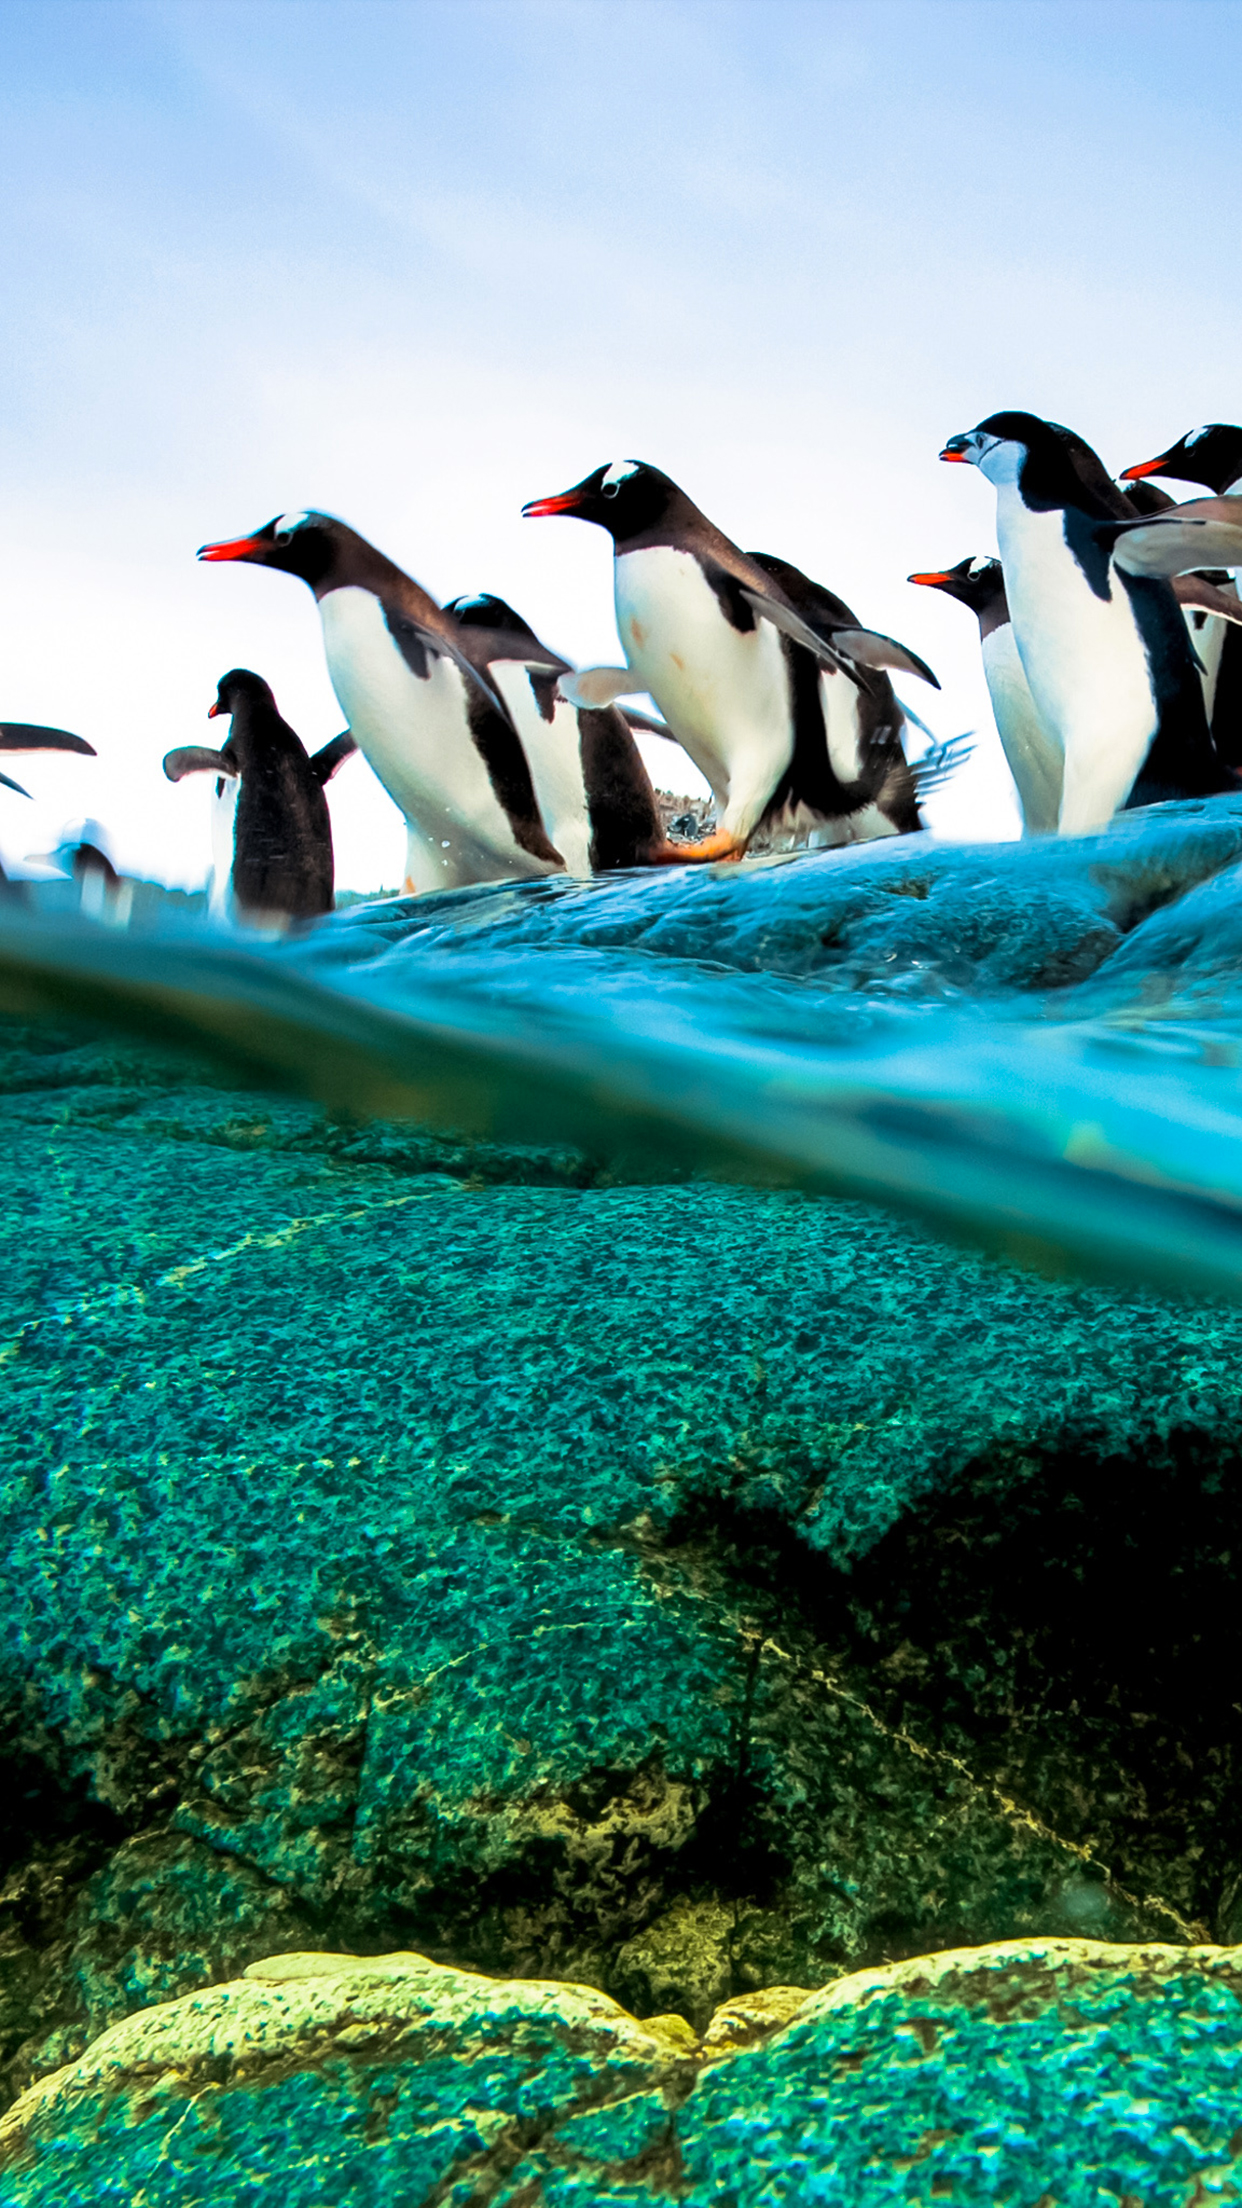 diving penguins wallpaper for iphone x, 8, 7, 6 - free download on